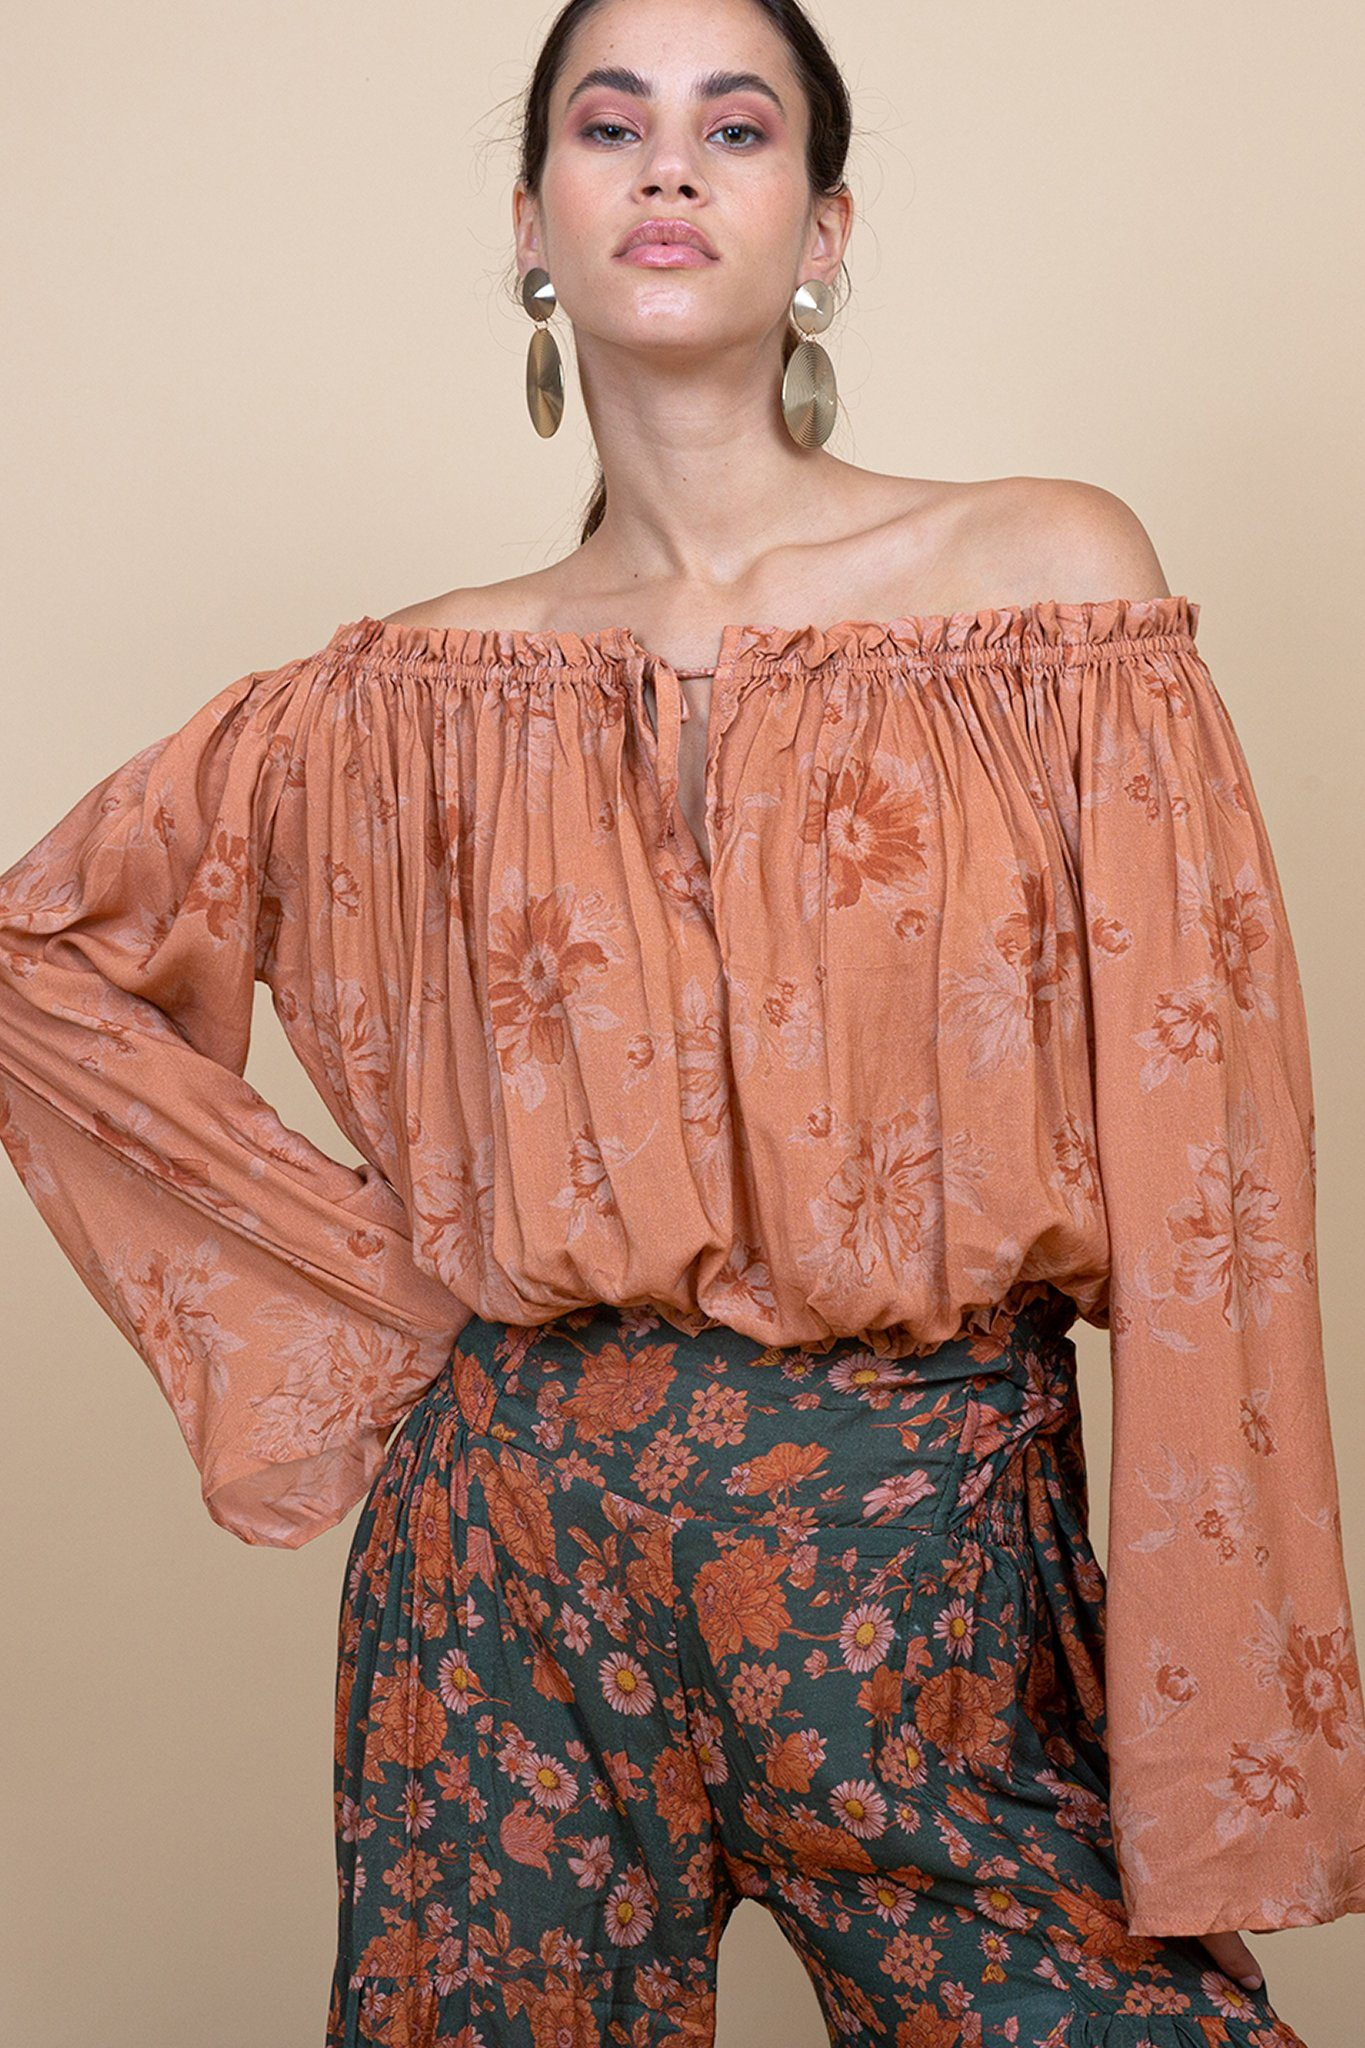 Jaisalmer Crop Top - Fadded Floral blush - Poppyfield the Label